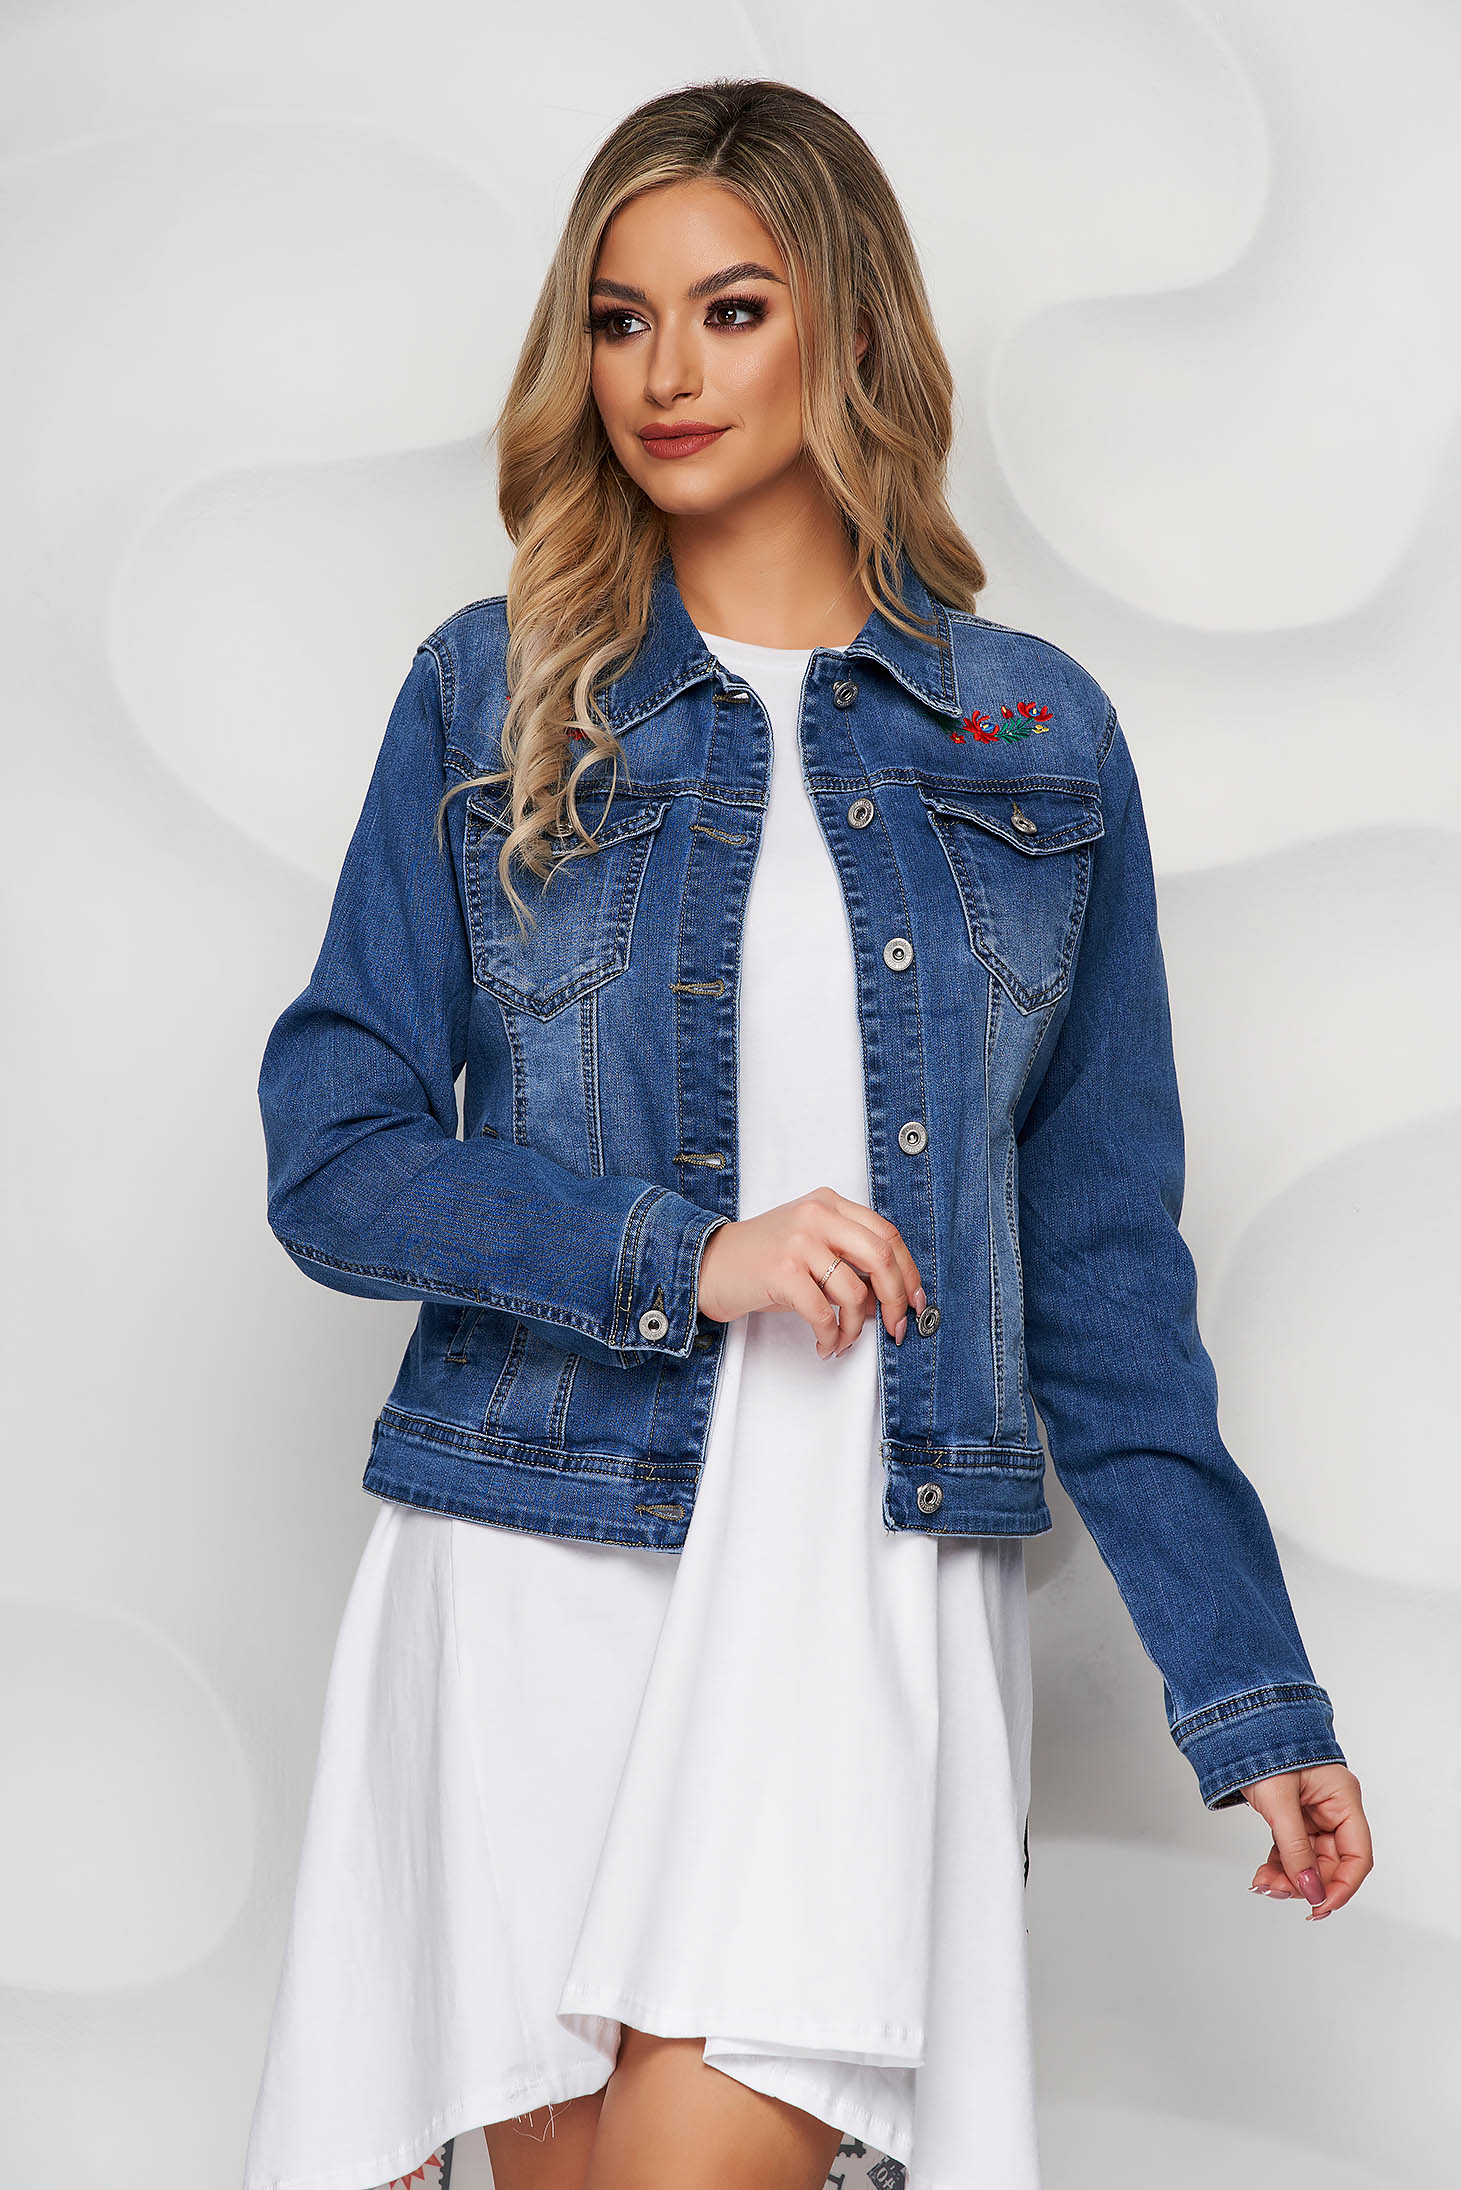 Blue jacket denim tented with pockets embroidered